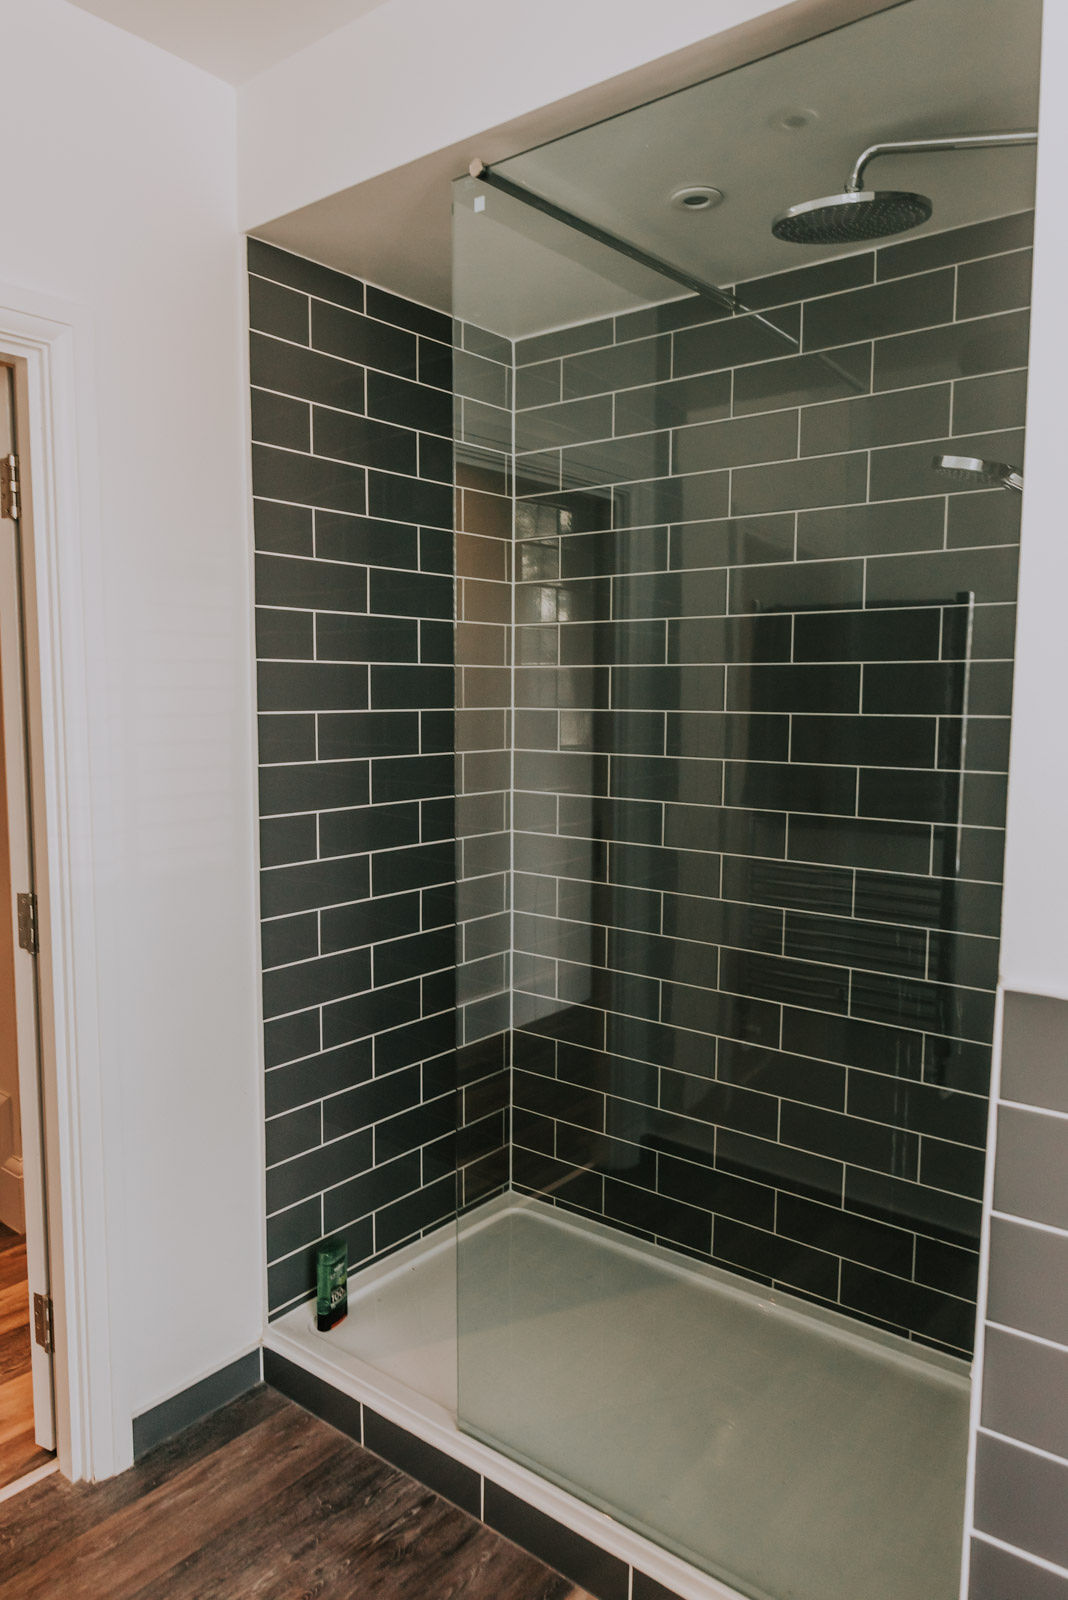 Shower at Cavendish House